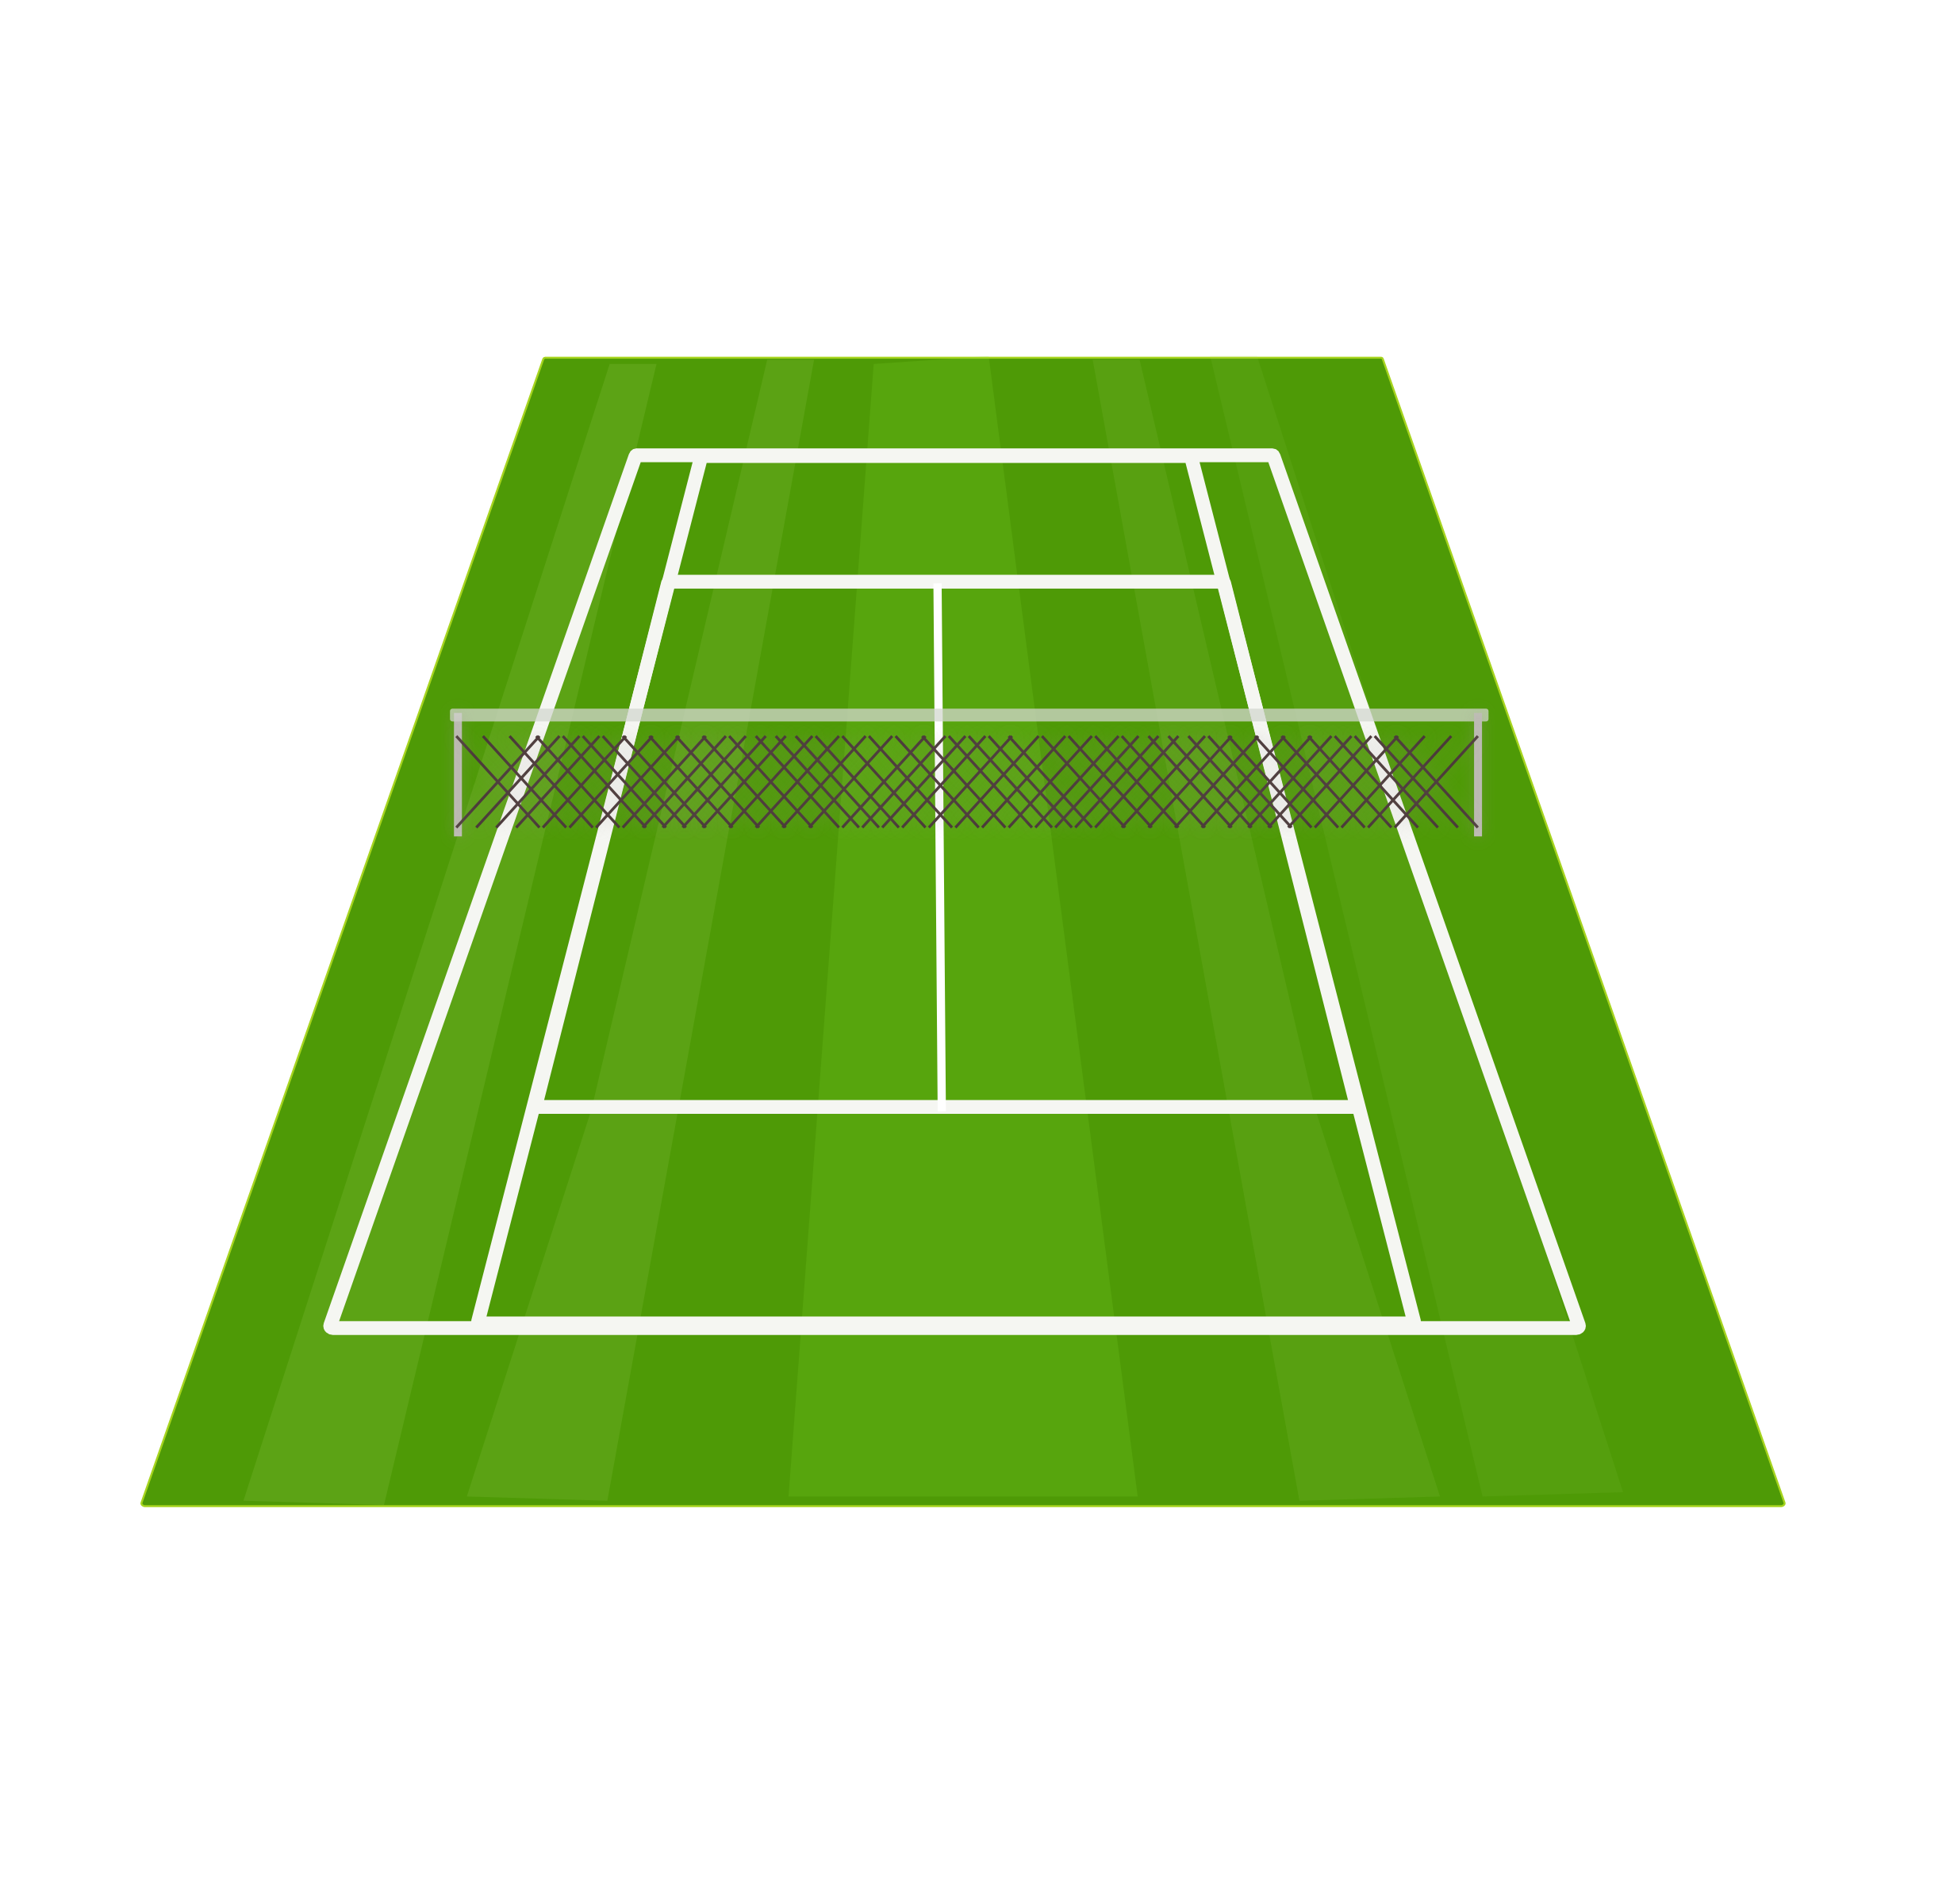 image library Tennis court clipart. Big image png